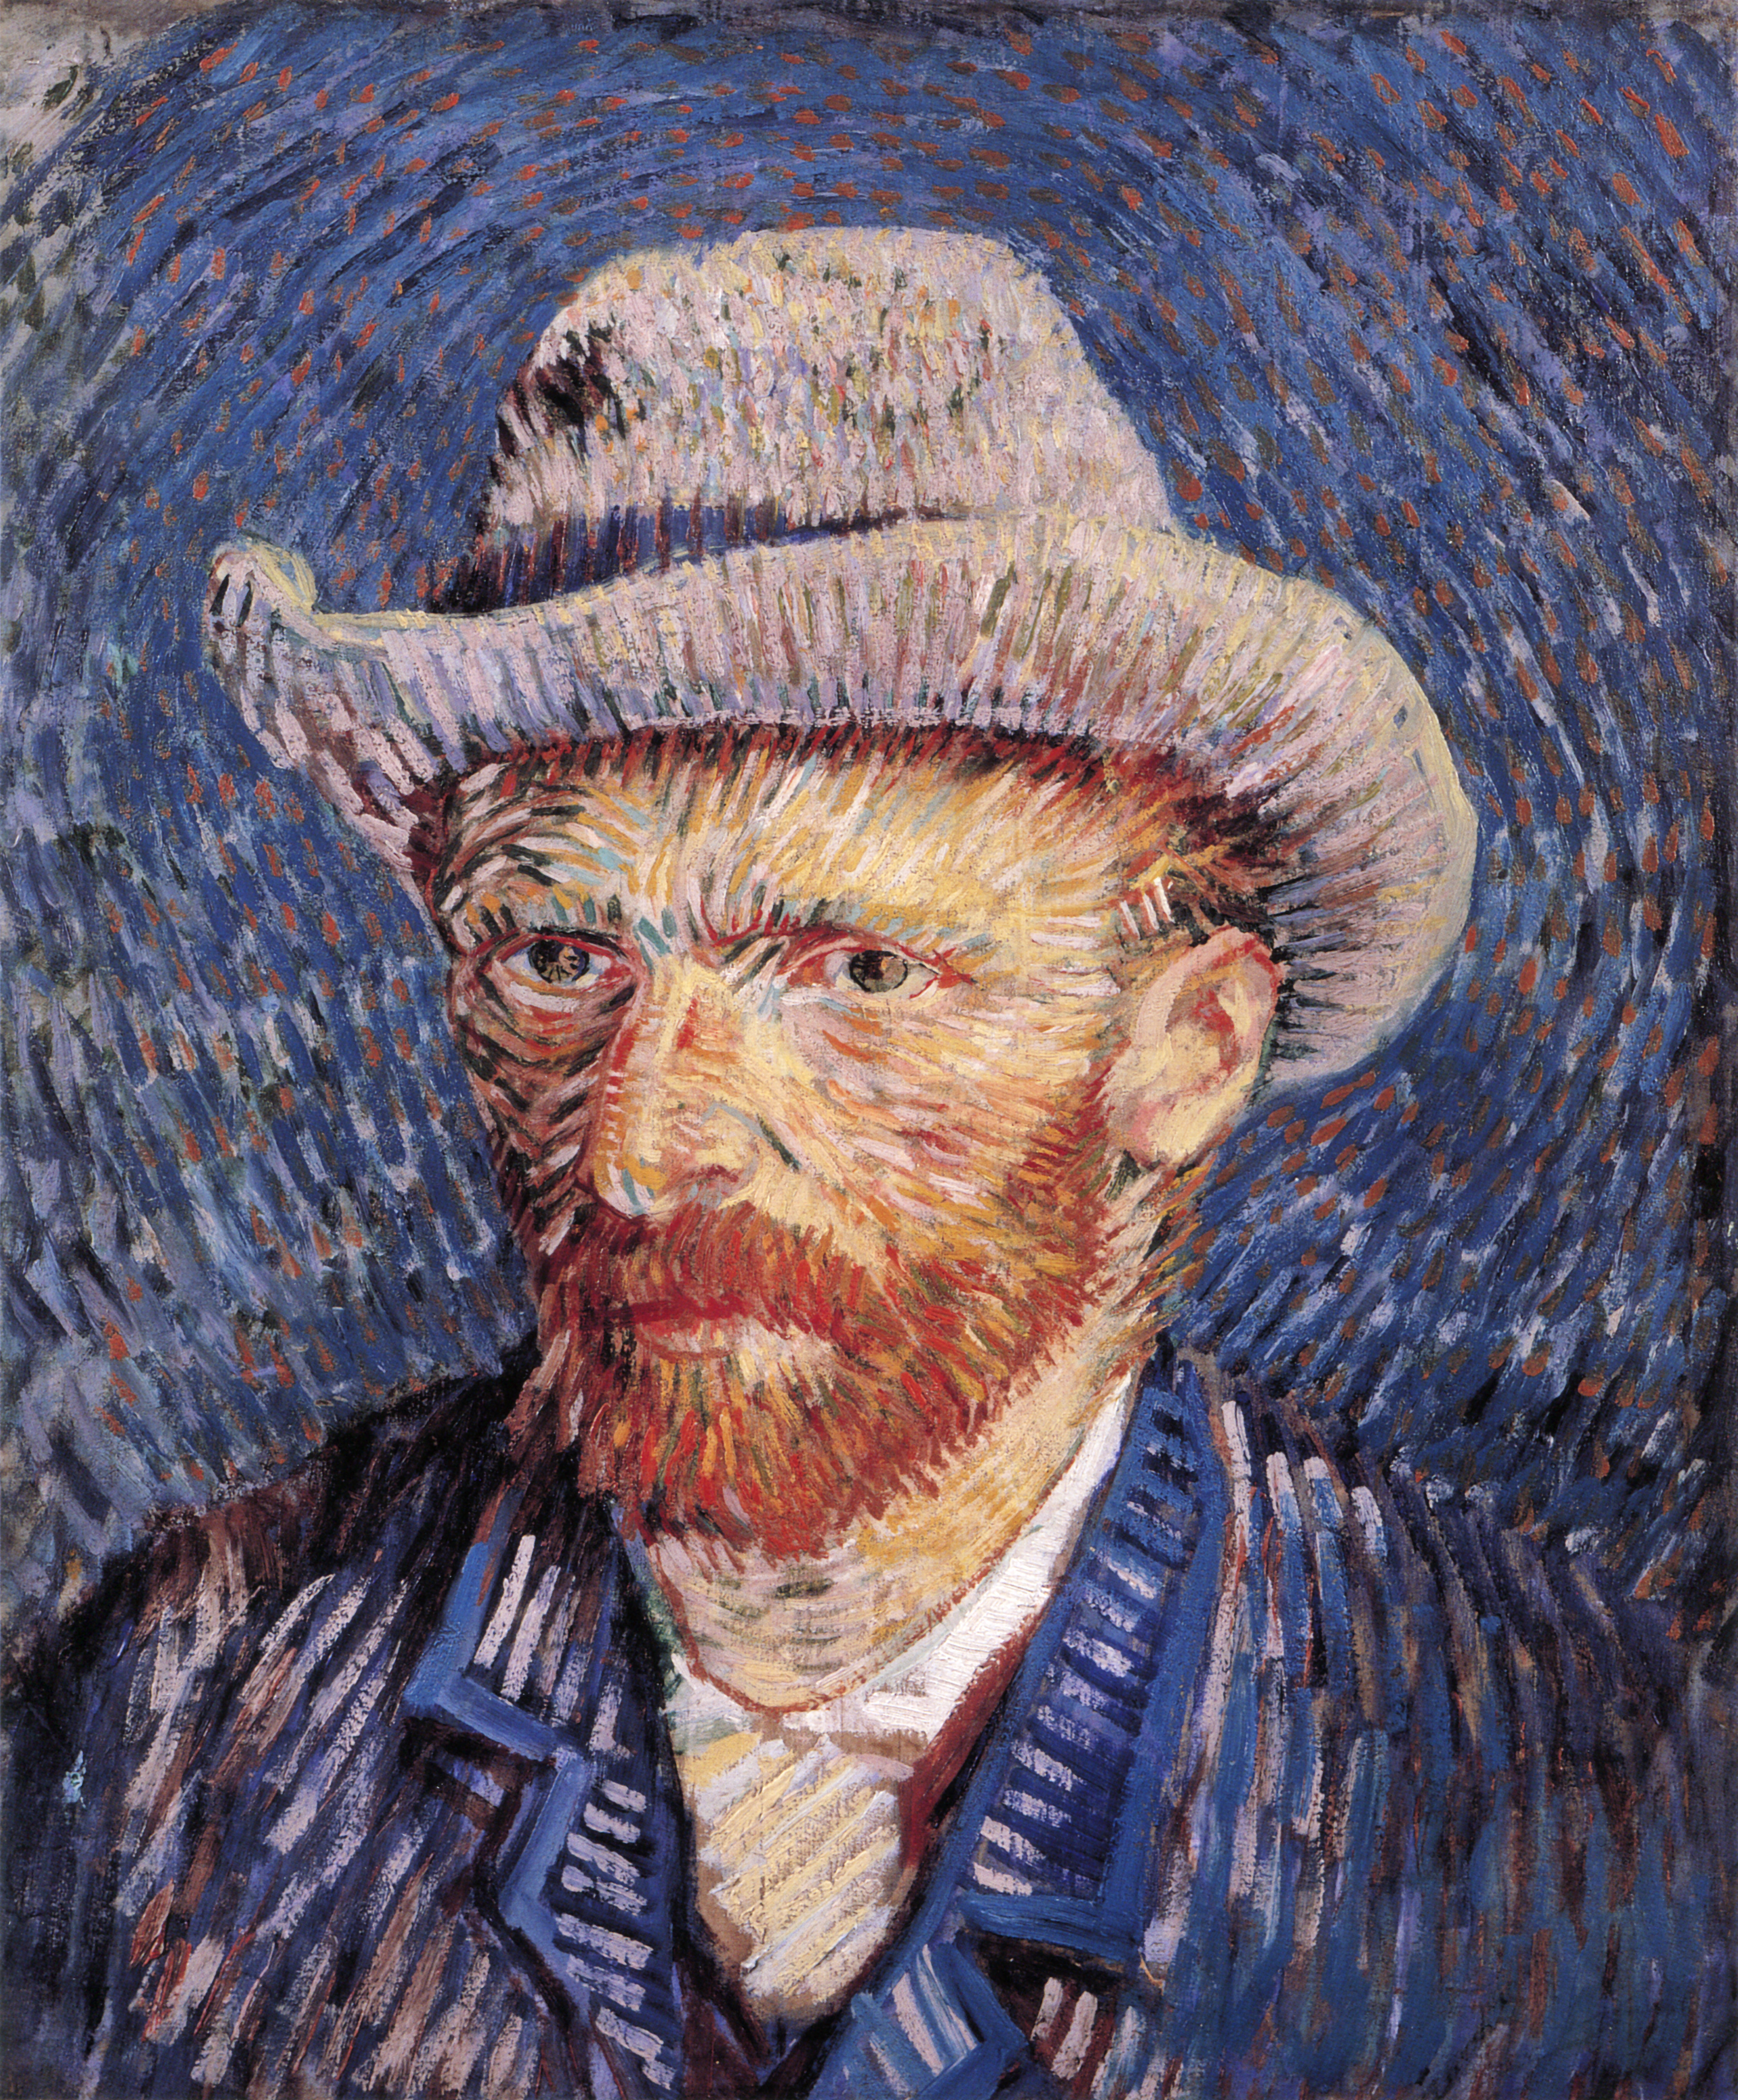 http://upload.wikimedia.org/wikipedia/commons/8/8e/Self-portrait_with_Felt_Hat_by_Vincent_van_Gogh.jpg